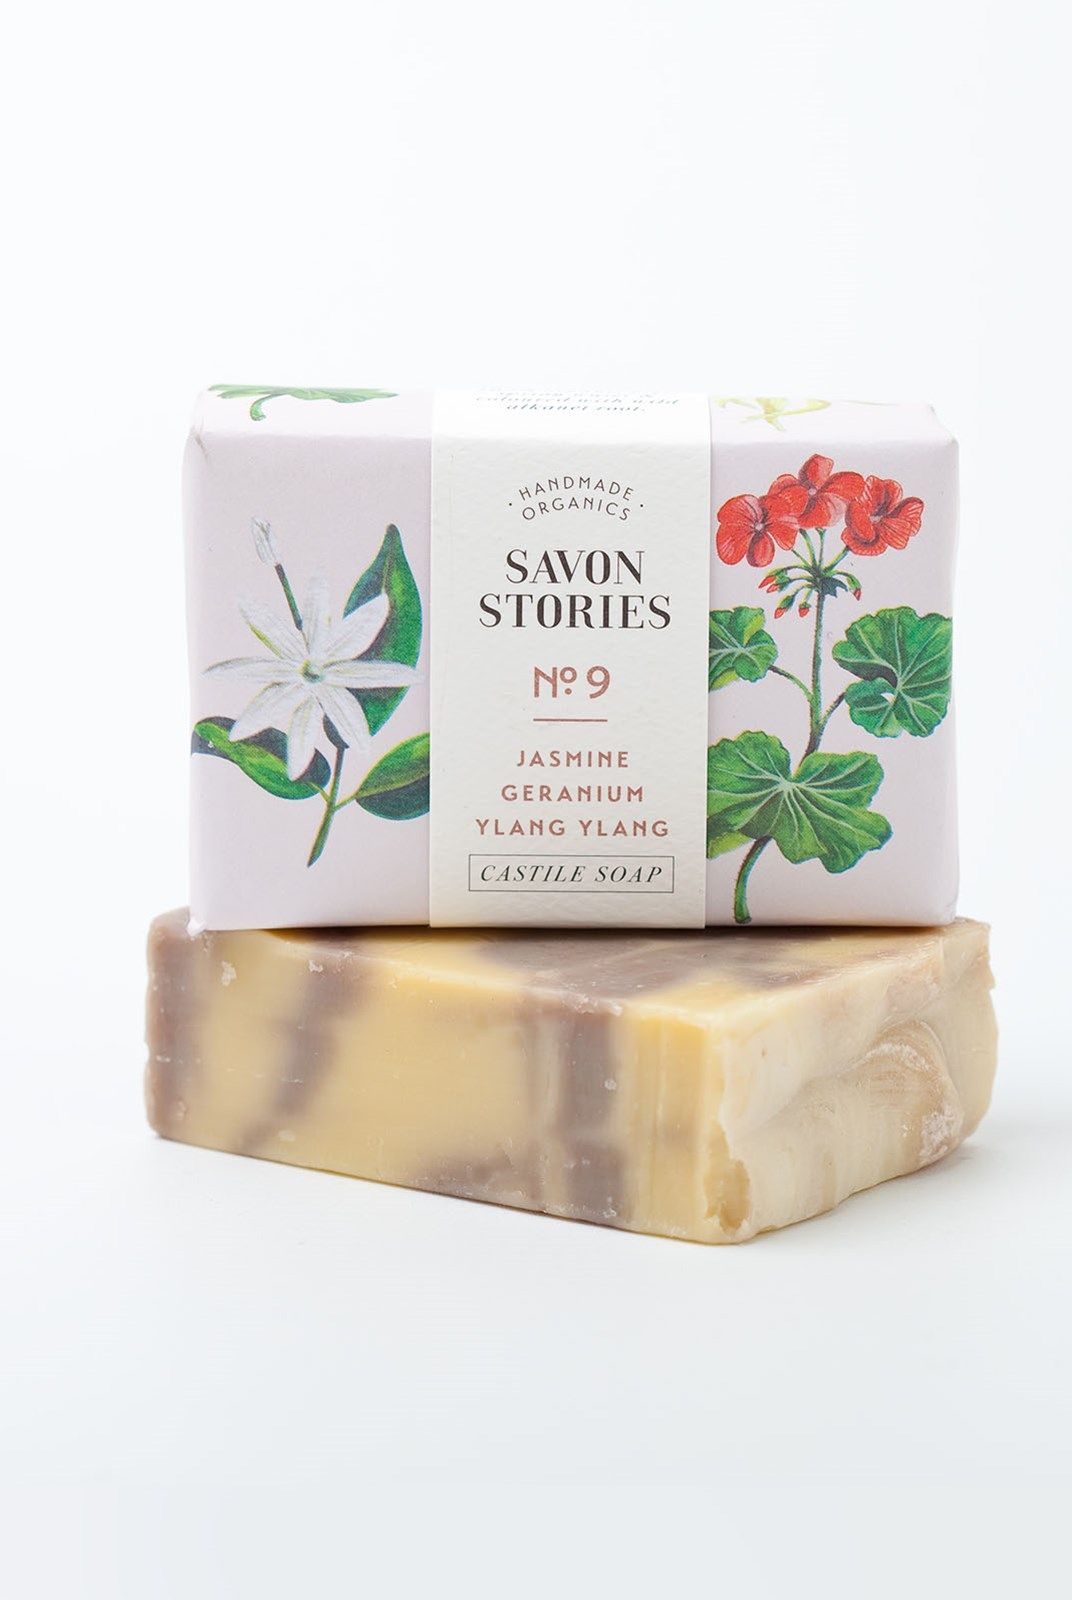 Savon Stories - Organic Soap - 105g - Alkanet